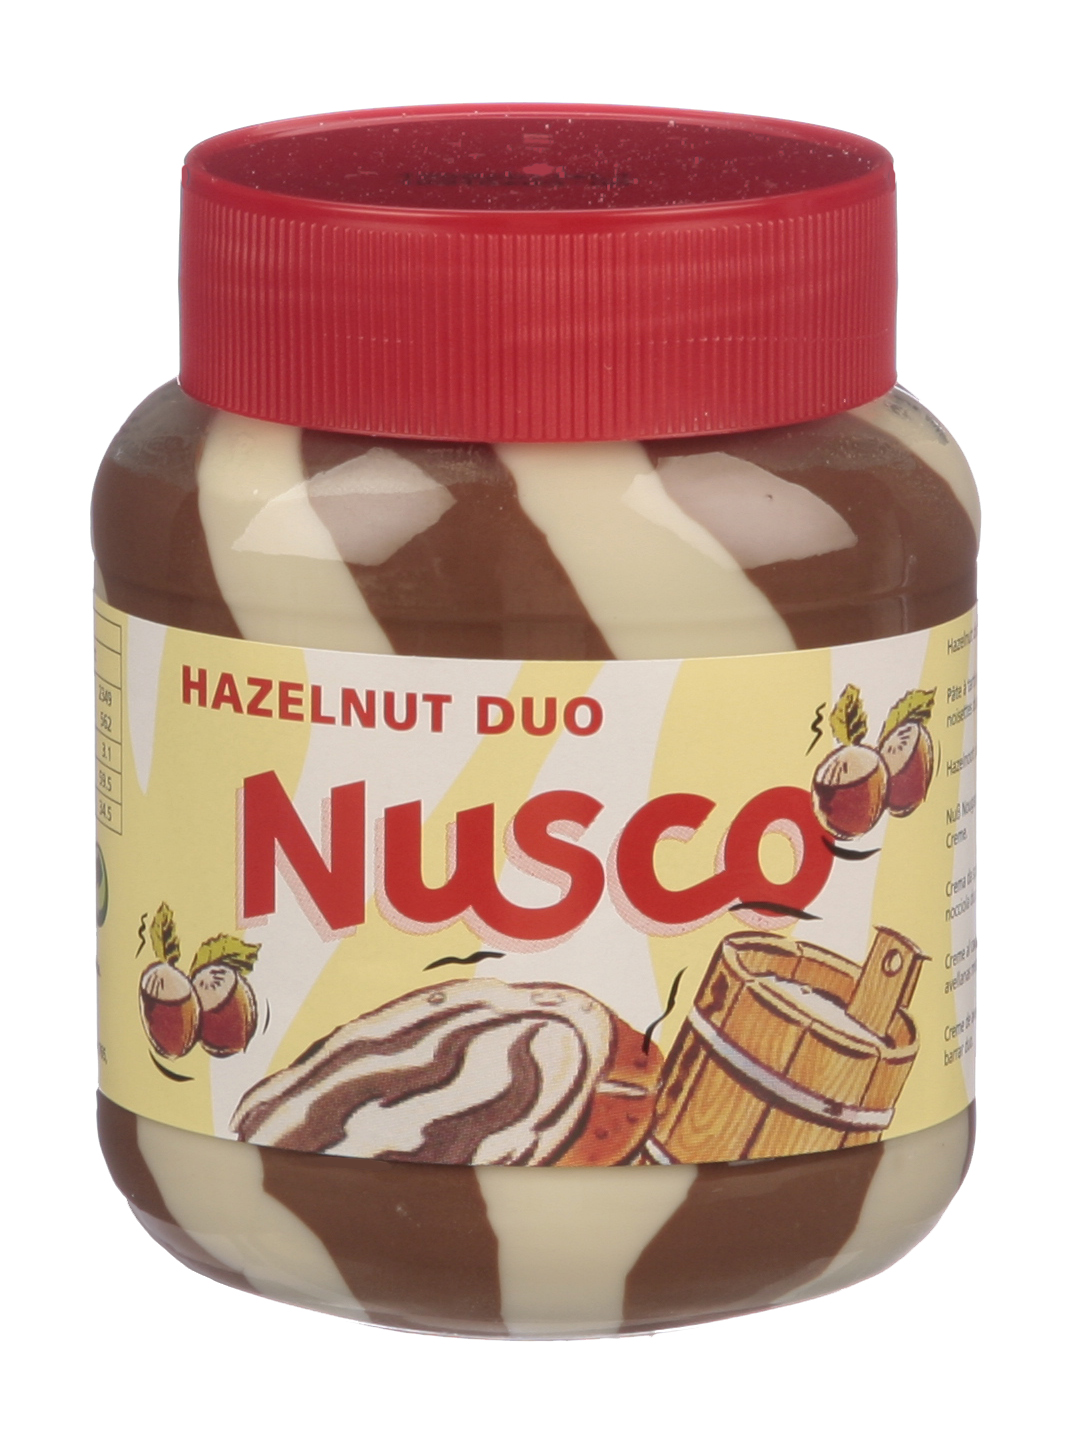 Nusco Milk & Hazelnut Chocolate spread